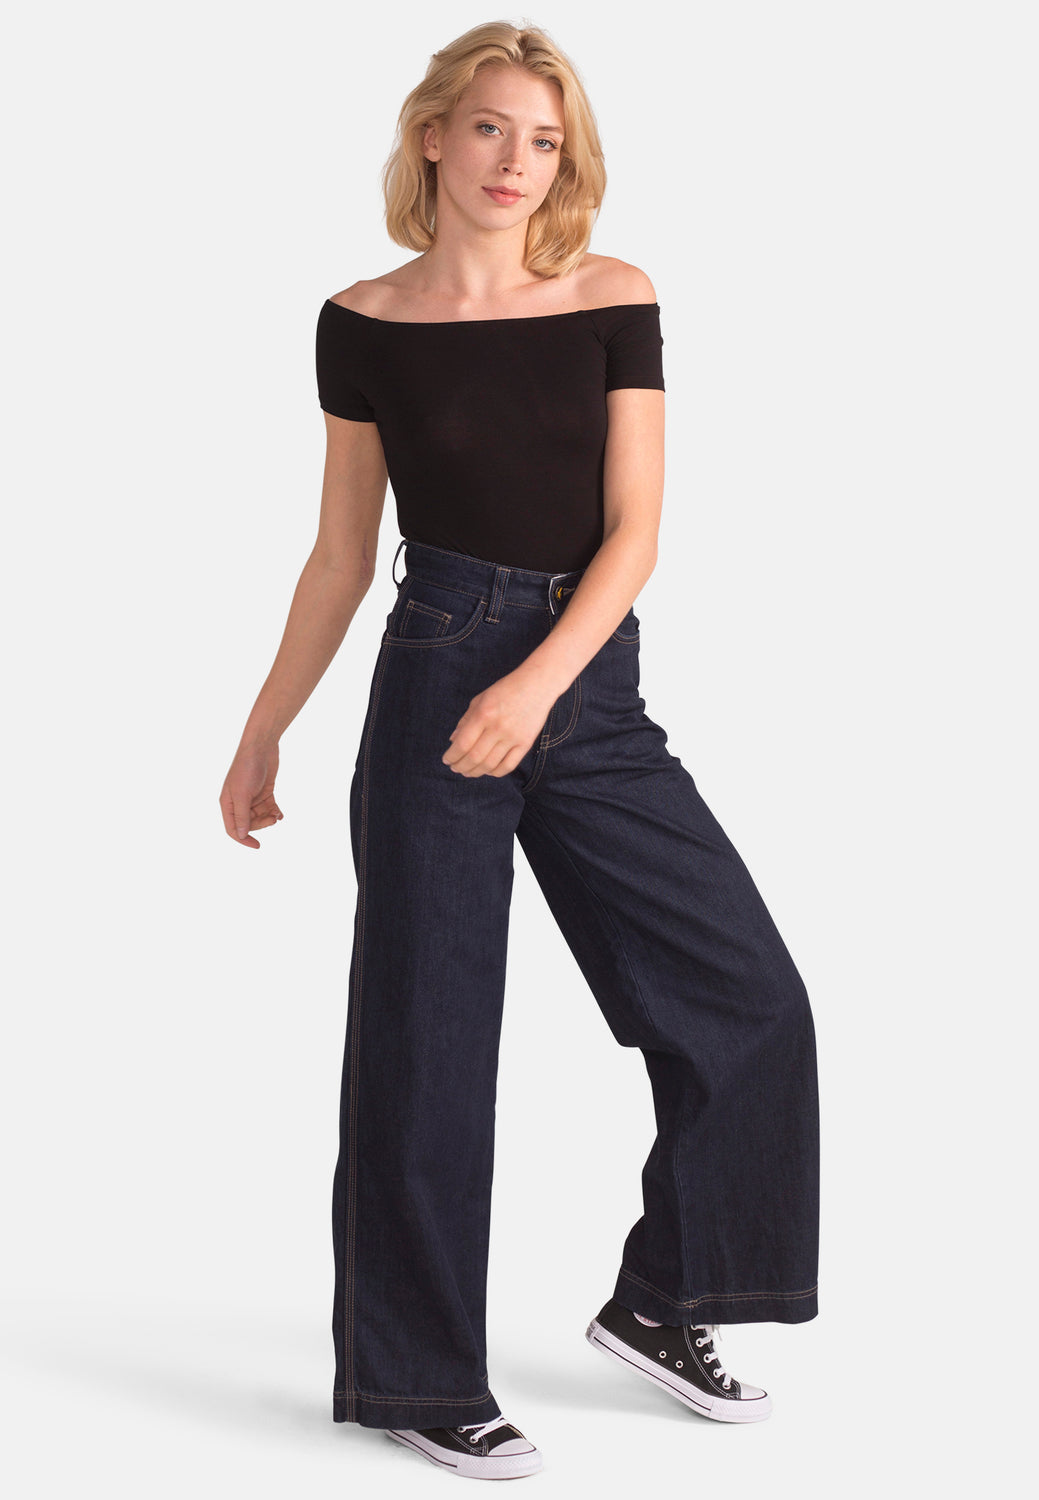 Wide Fit Jeans in Organic Rinse Wash Denim - Monkee Genes Organic Jeans Denim - Women's Wide Fit Monkee Genes Official  Monkee Genes Official